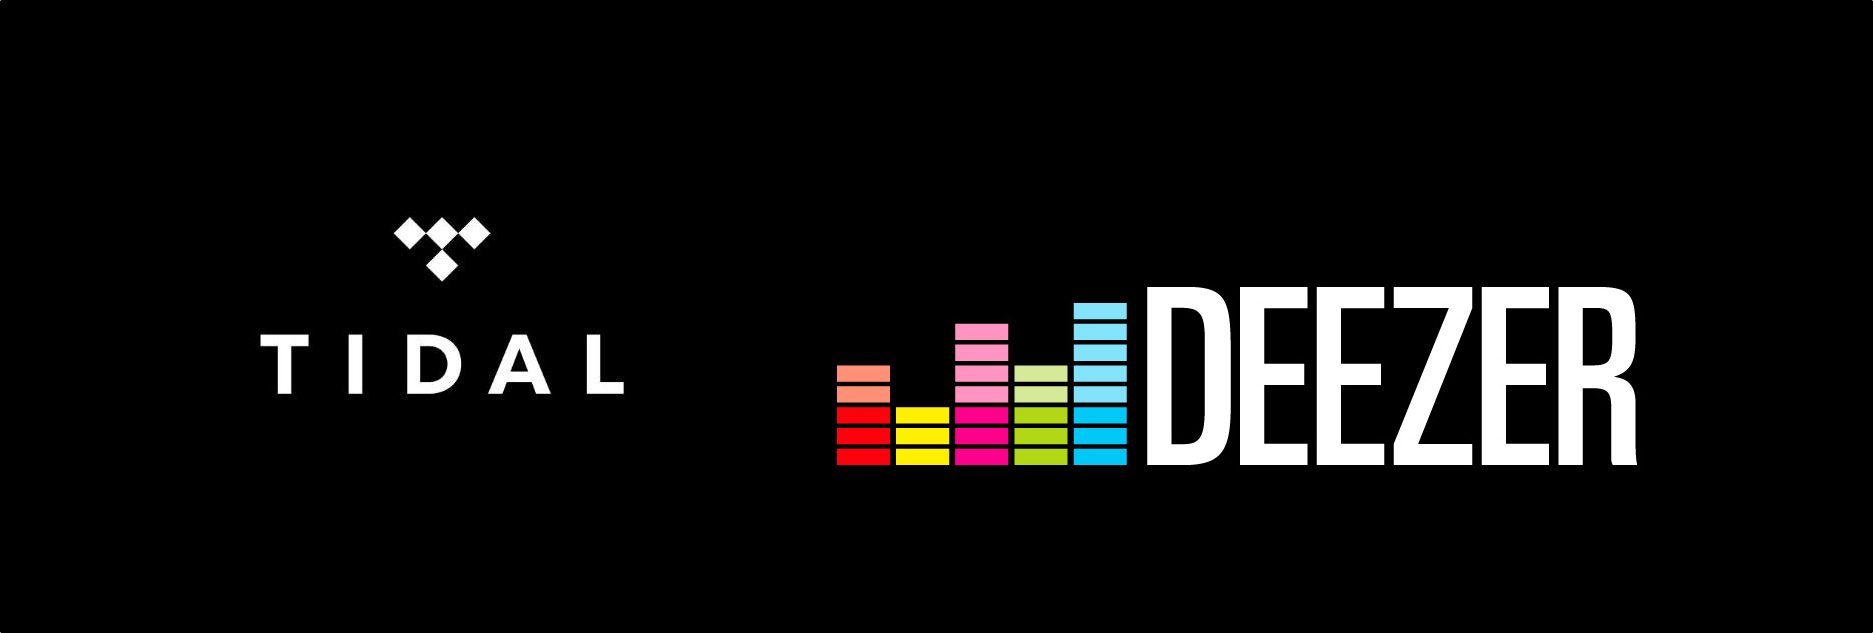 In the US, Deezer and Tidal are ready to take on Spotify and other music streaming services